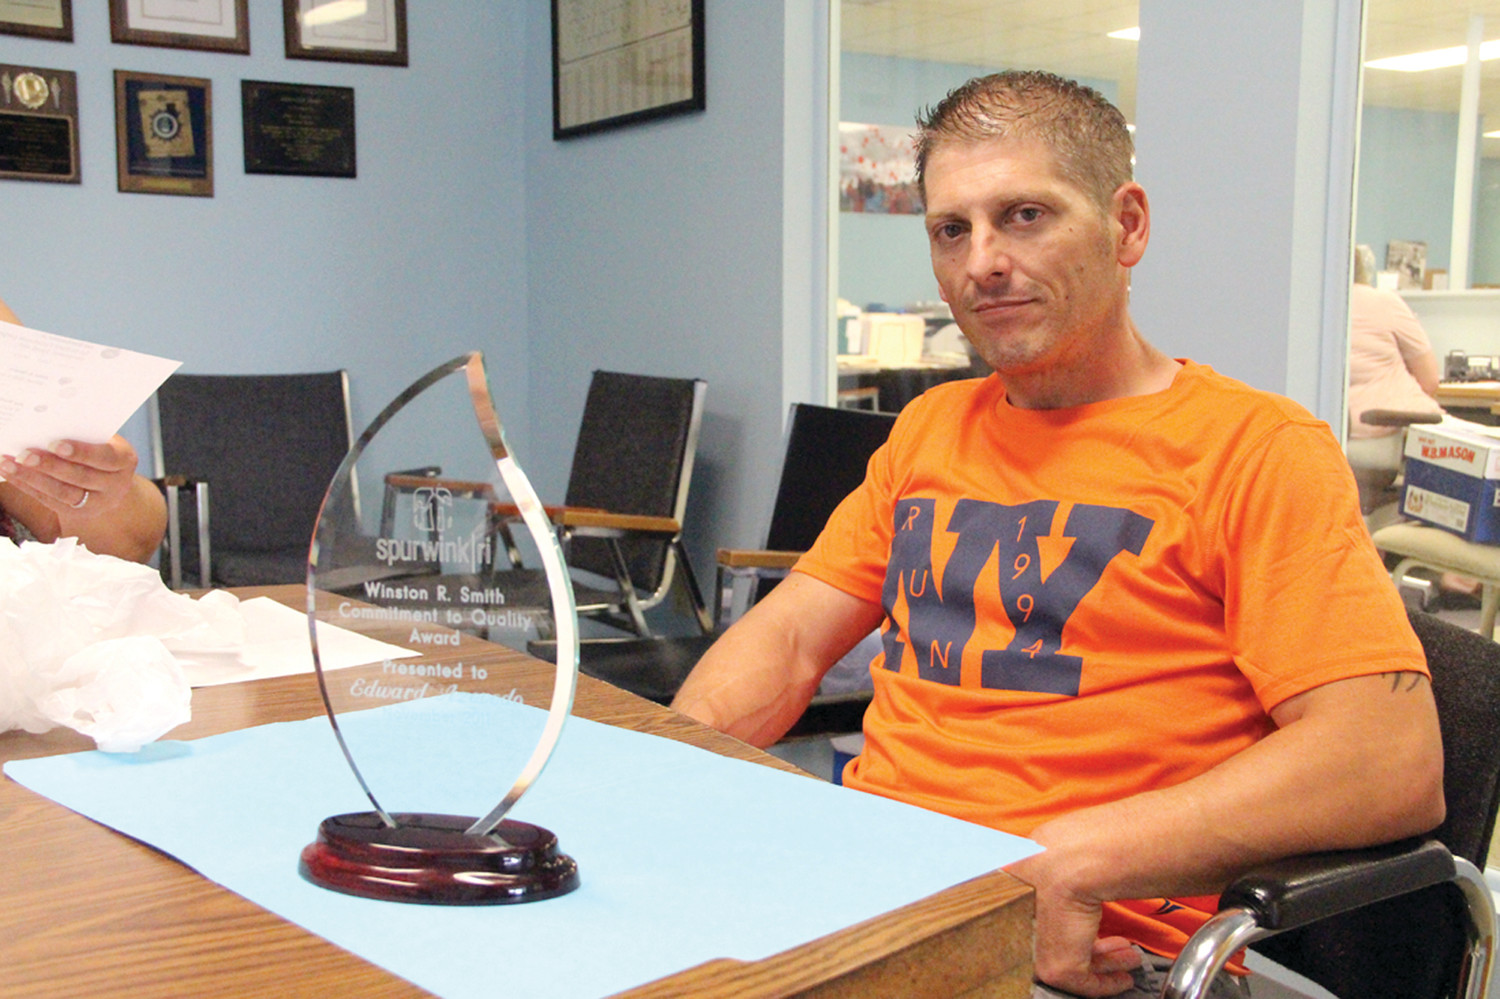 "ANGERED: Eddie Azevedo, owner of Eddie's Diner where the confrontation between him and John Sears happened, said he's angry with the ""slander"" he's been subject to online. He is pictured with the Spurwink/RI Winston R. Smith Commitment to Quality Award presented to him on Nov. 20, 2011."